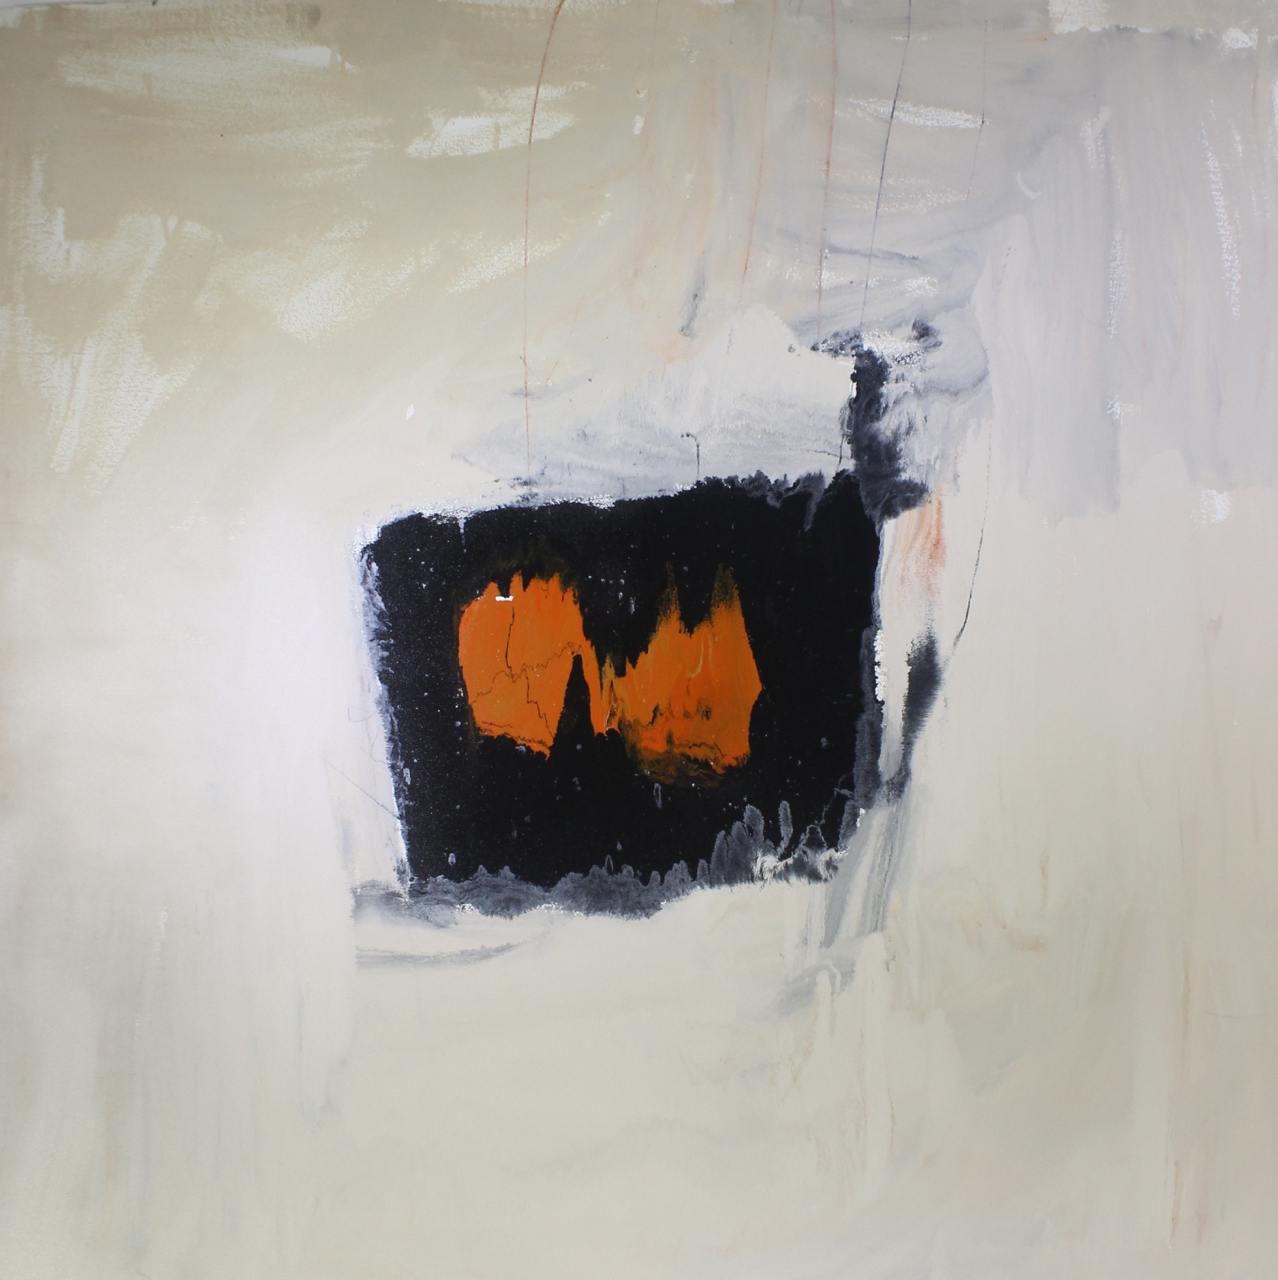 Two oranges II, 2014, enamel paint on canvas, 152 x 152 cm